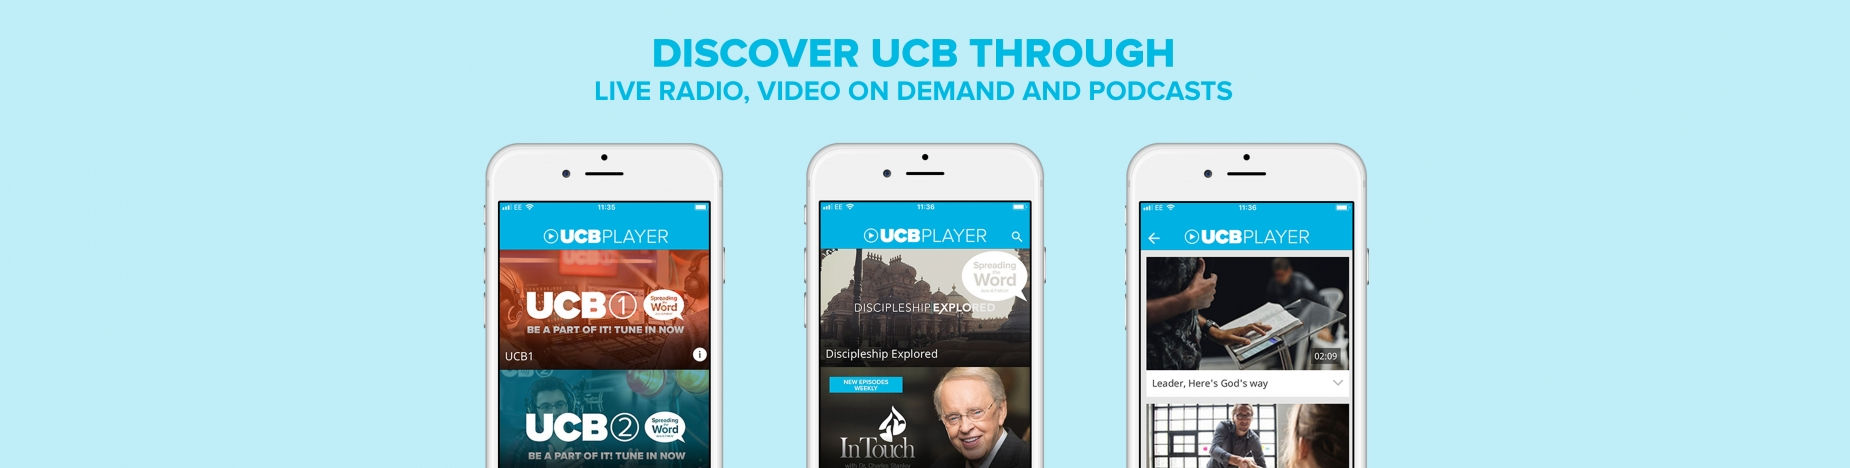 Discover UCB through Live radio, Video on Demand and Podcasts